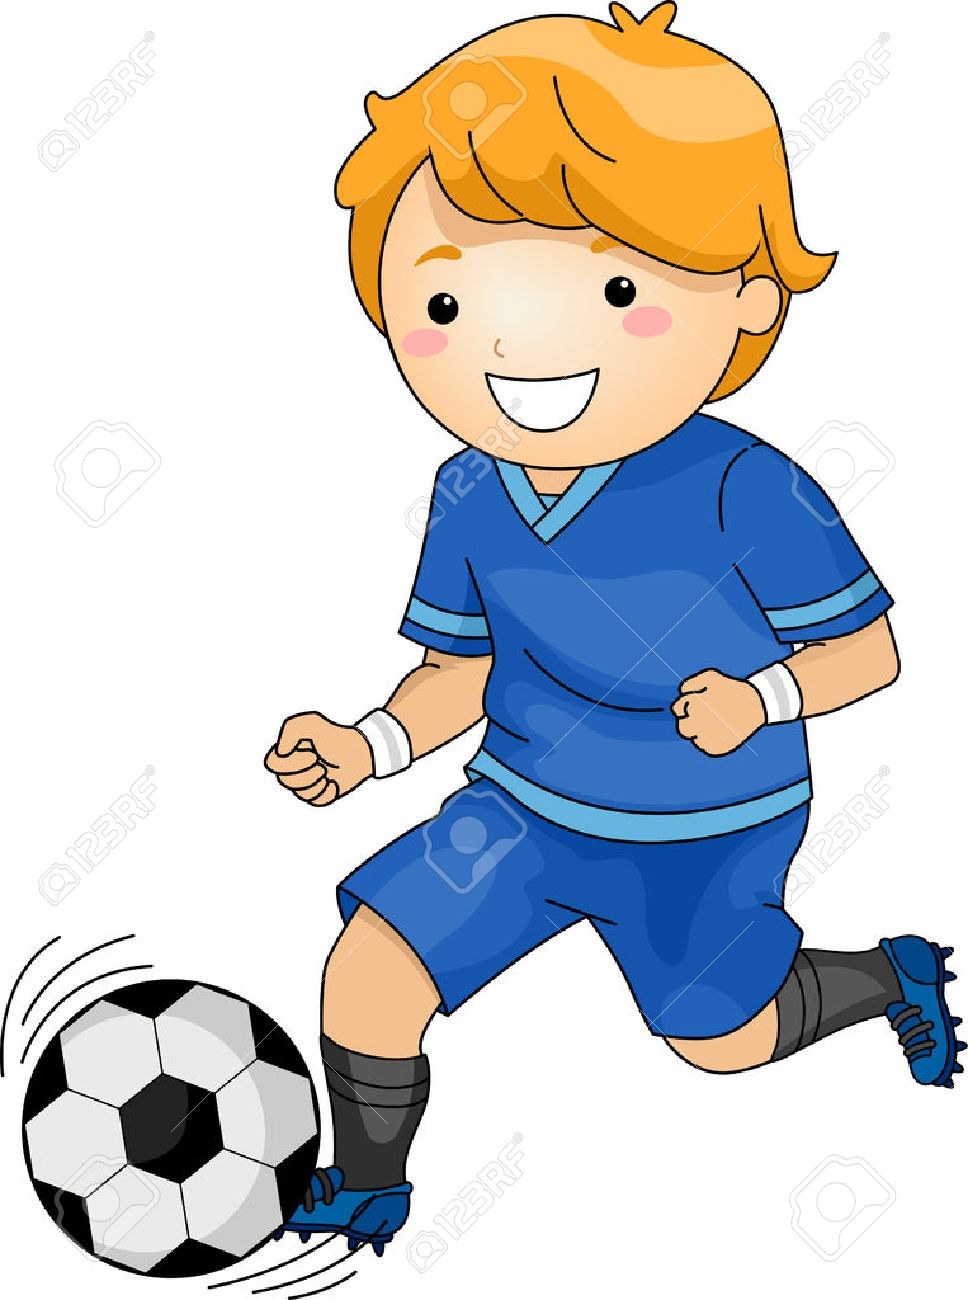 illustration featuring a young soccer player running across the rh 123rf com soccer player clip art black and white soccer player clipart png